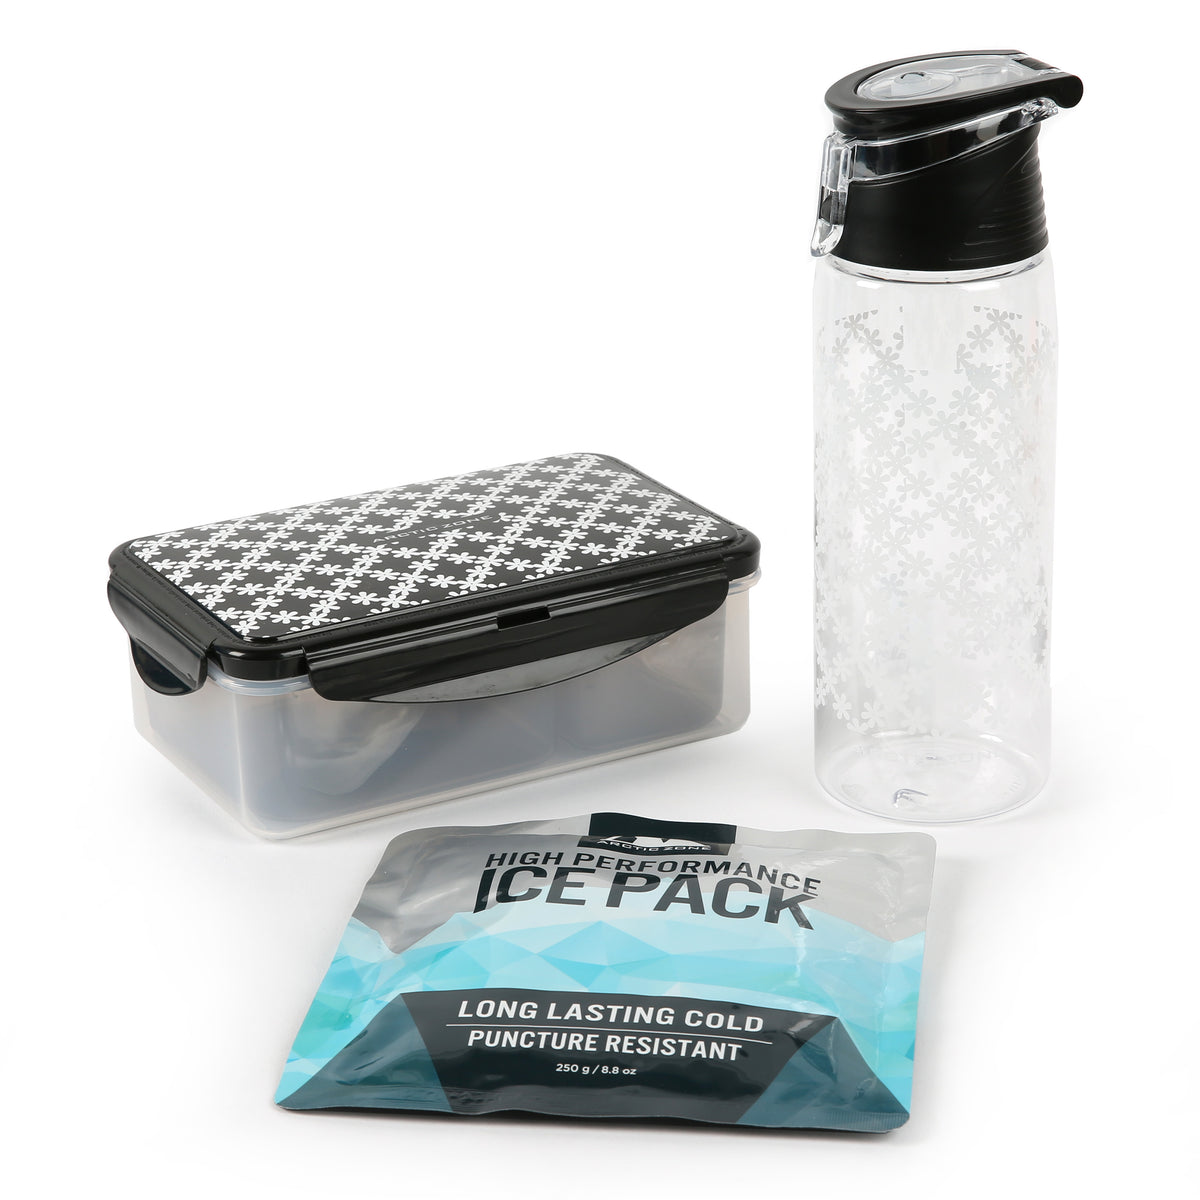 Arctic Zone® Commuter Tote - Delicate Daisies - Ice pack, water bottle and containers